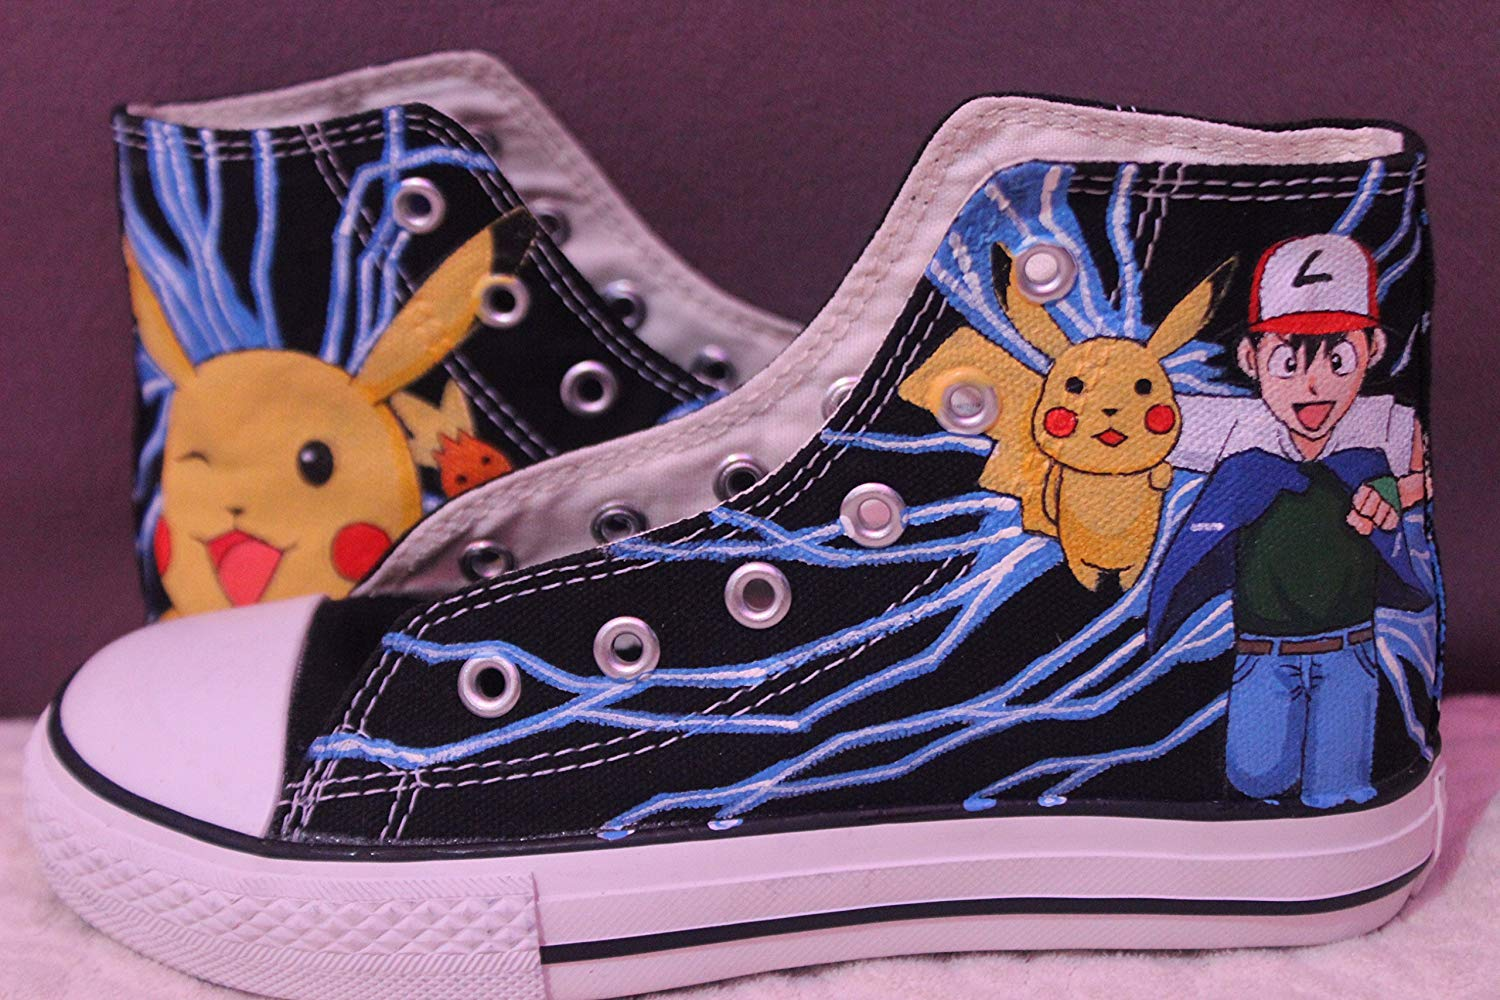 a3296ac67a0b Get Quotations · Pokemon Hand Painted Shoes for Men Women High Top Black  Canvas Shoes Unique Gifts